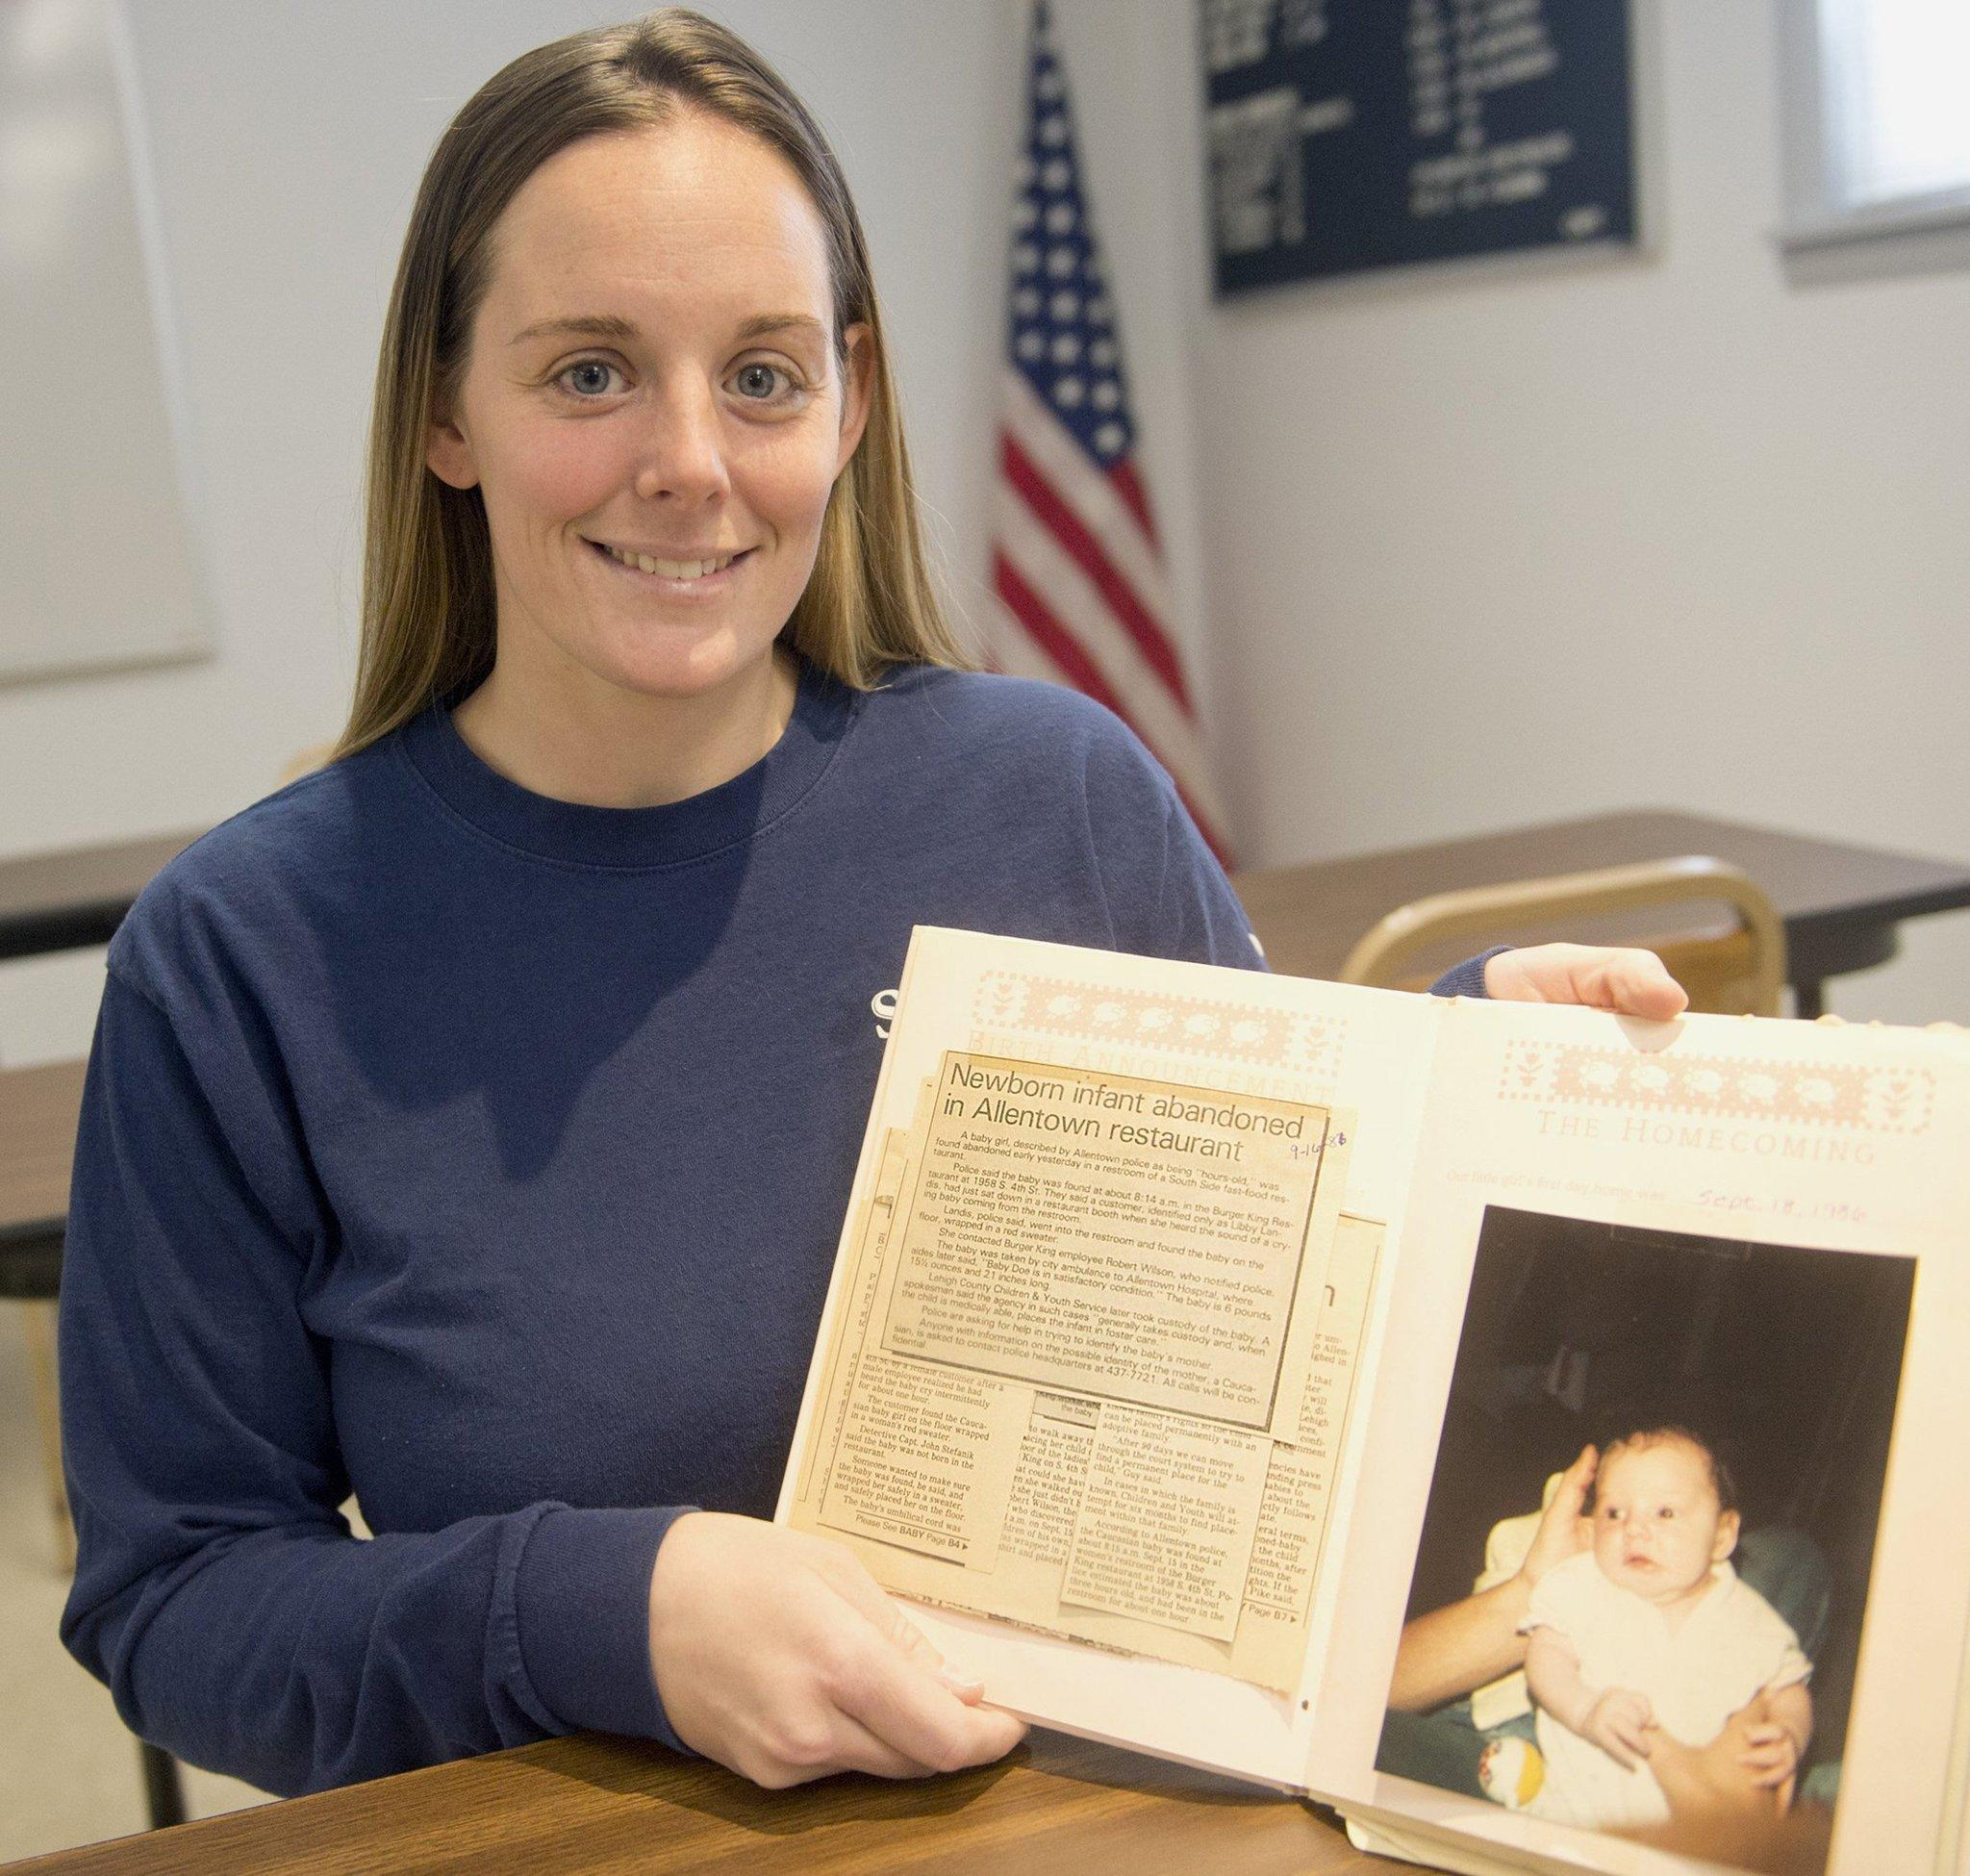 Katheryn Deprill, who was abandoned in an Allentown, Pa., Burger King, when she was about one hour old, is seeking her birth mother. Here, she poses for a photo with her baby book.